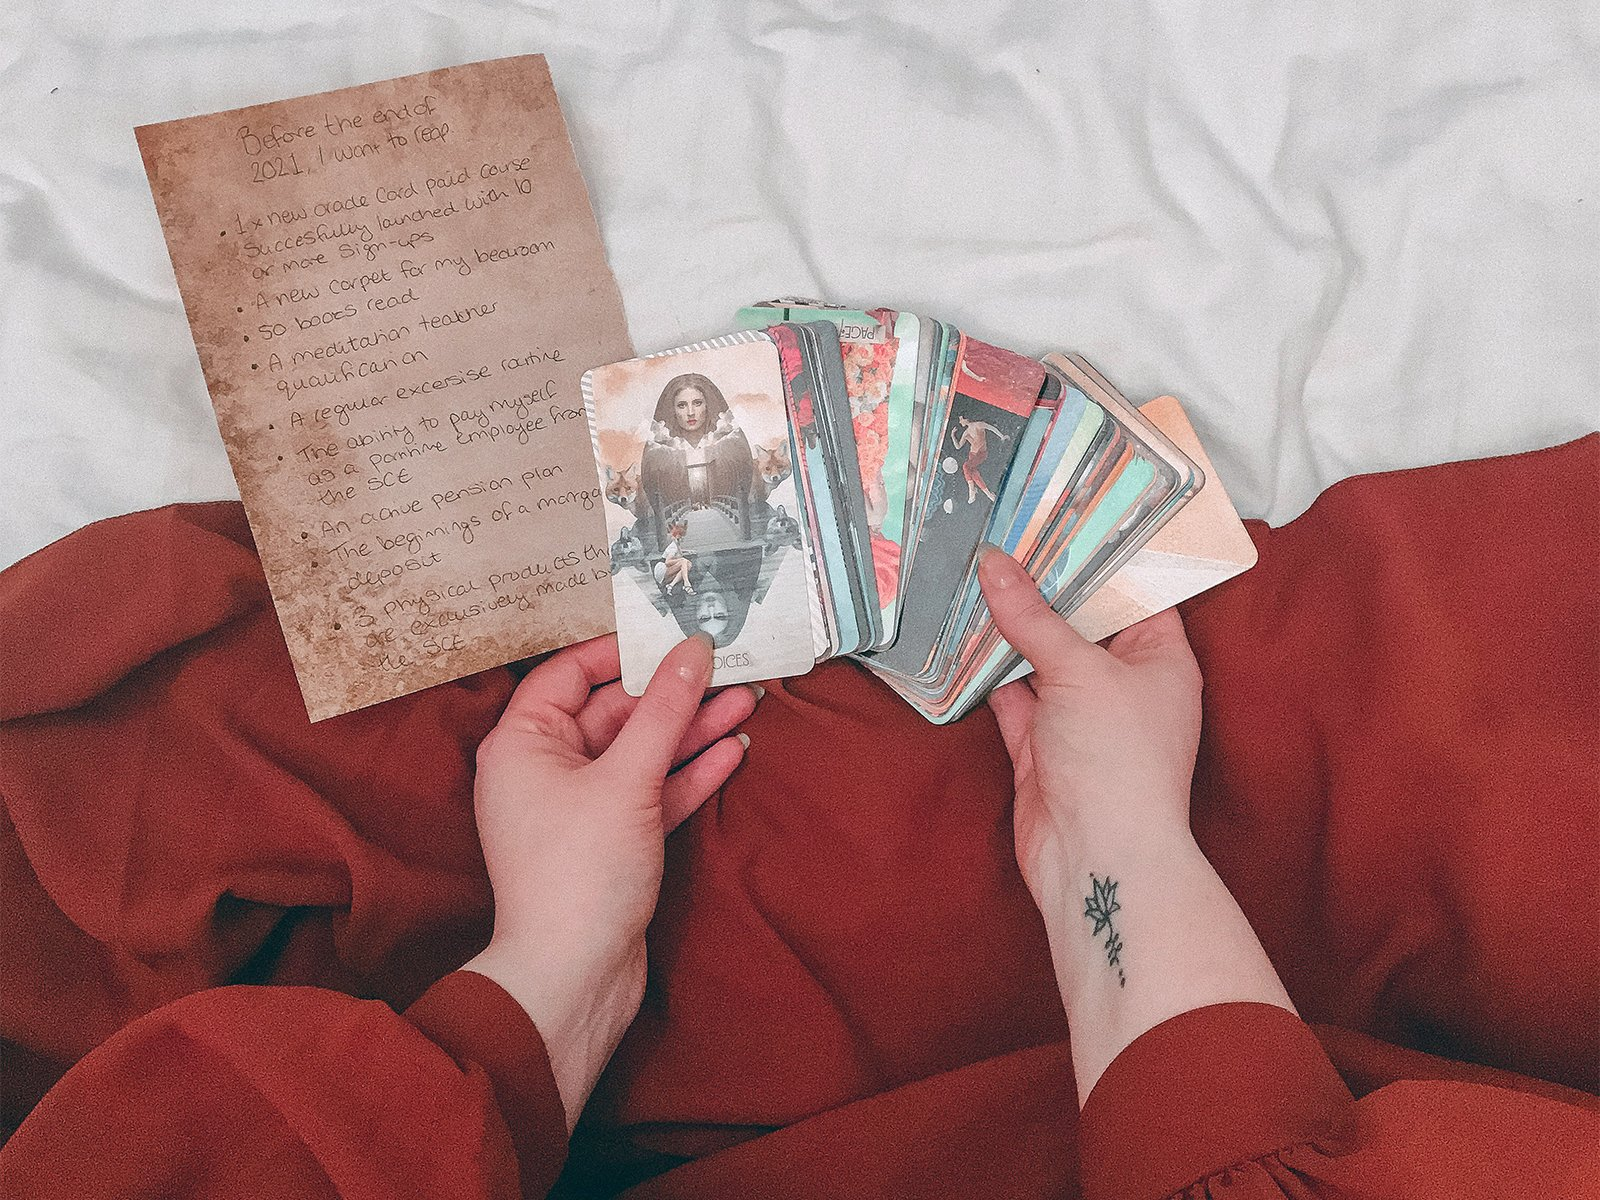 An individual uses tarot cards. Photo by Cat Crawford/Unsplash/Creative Commons